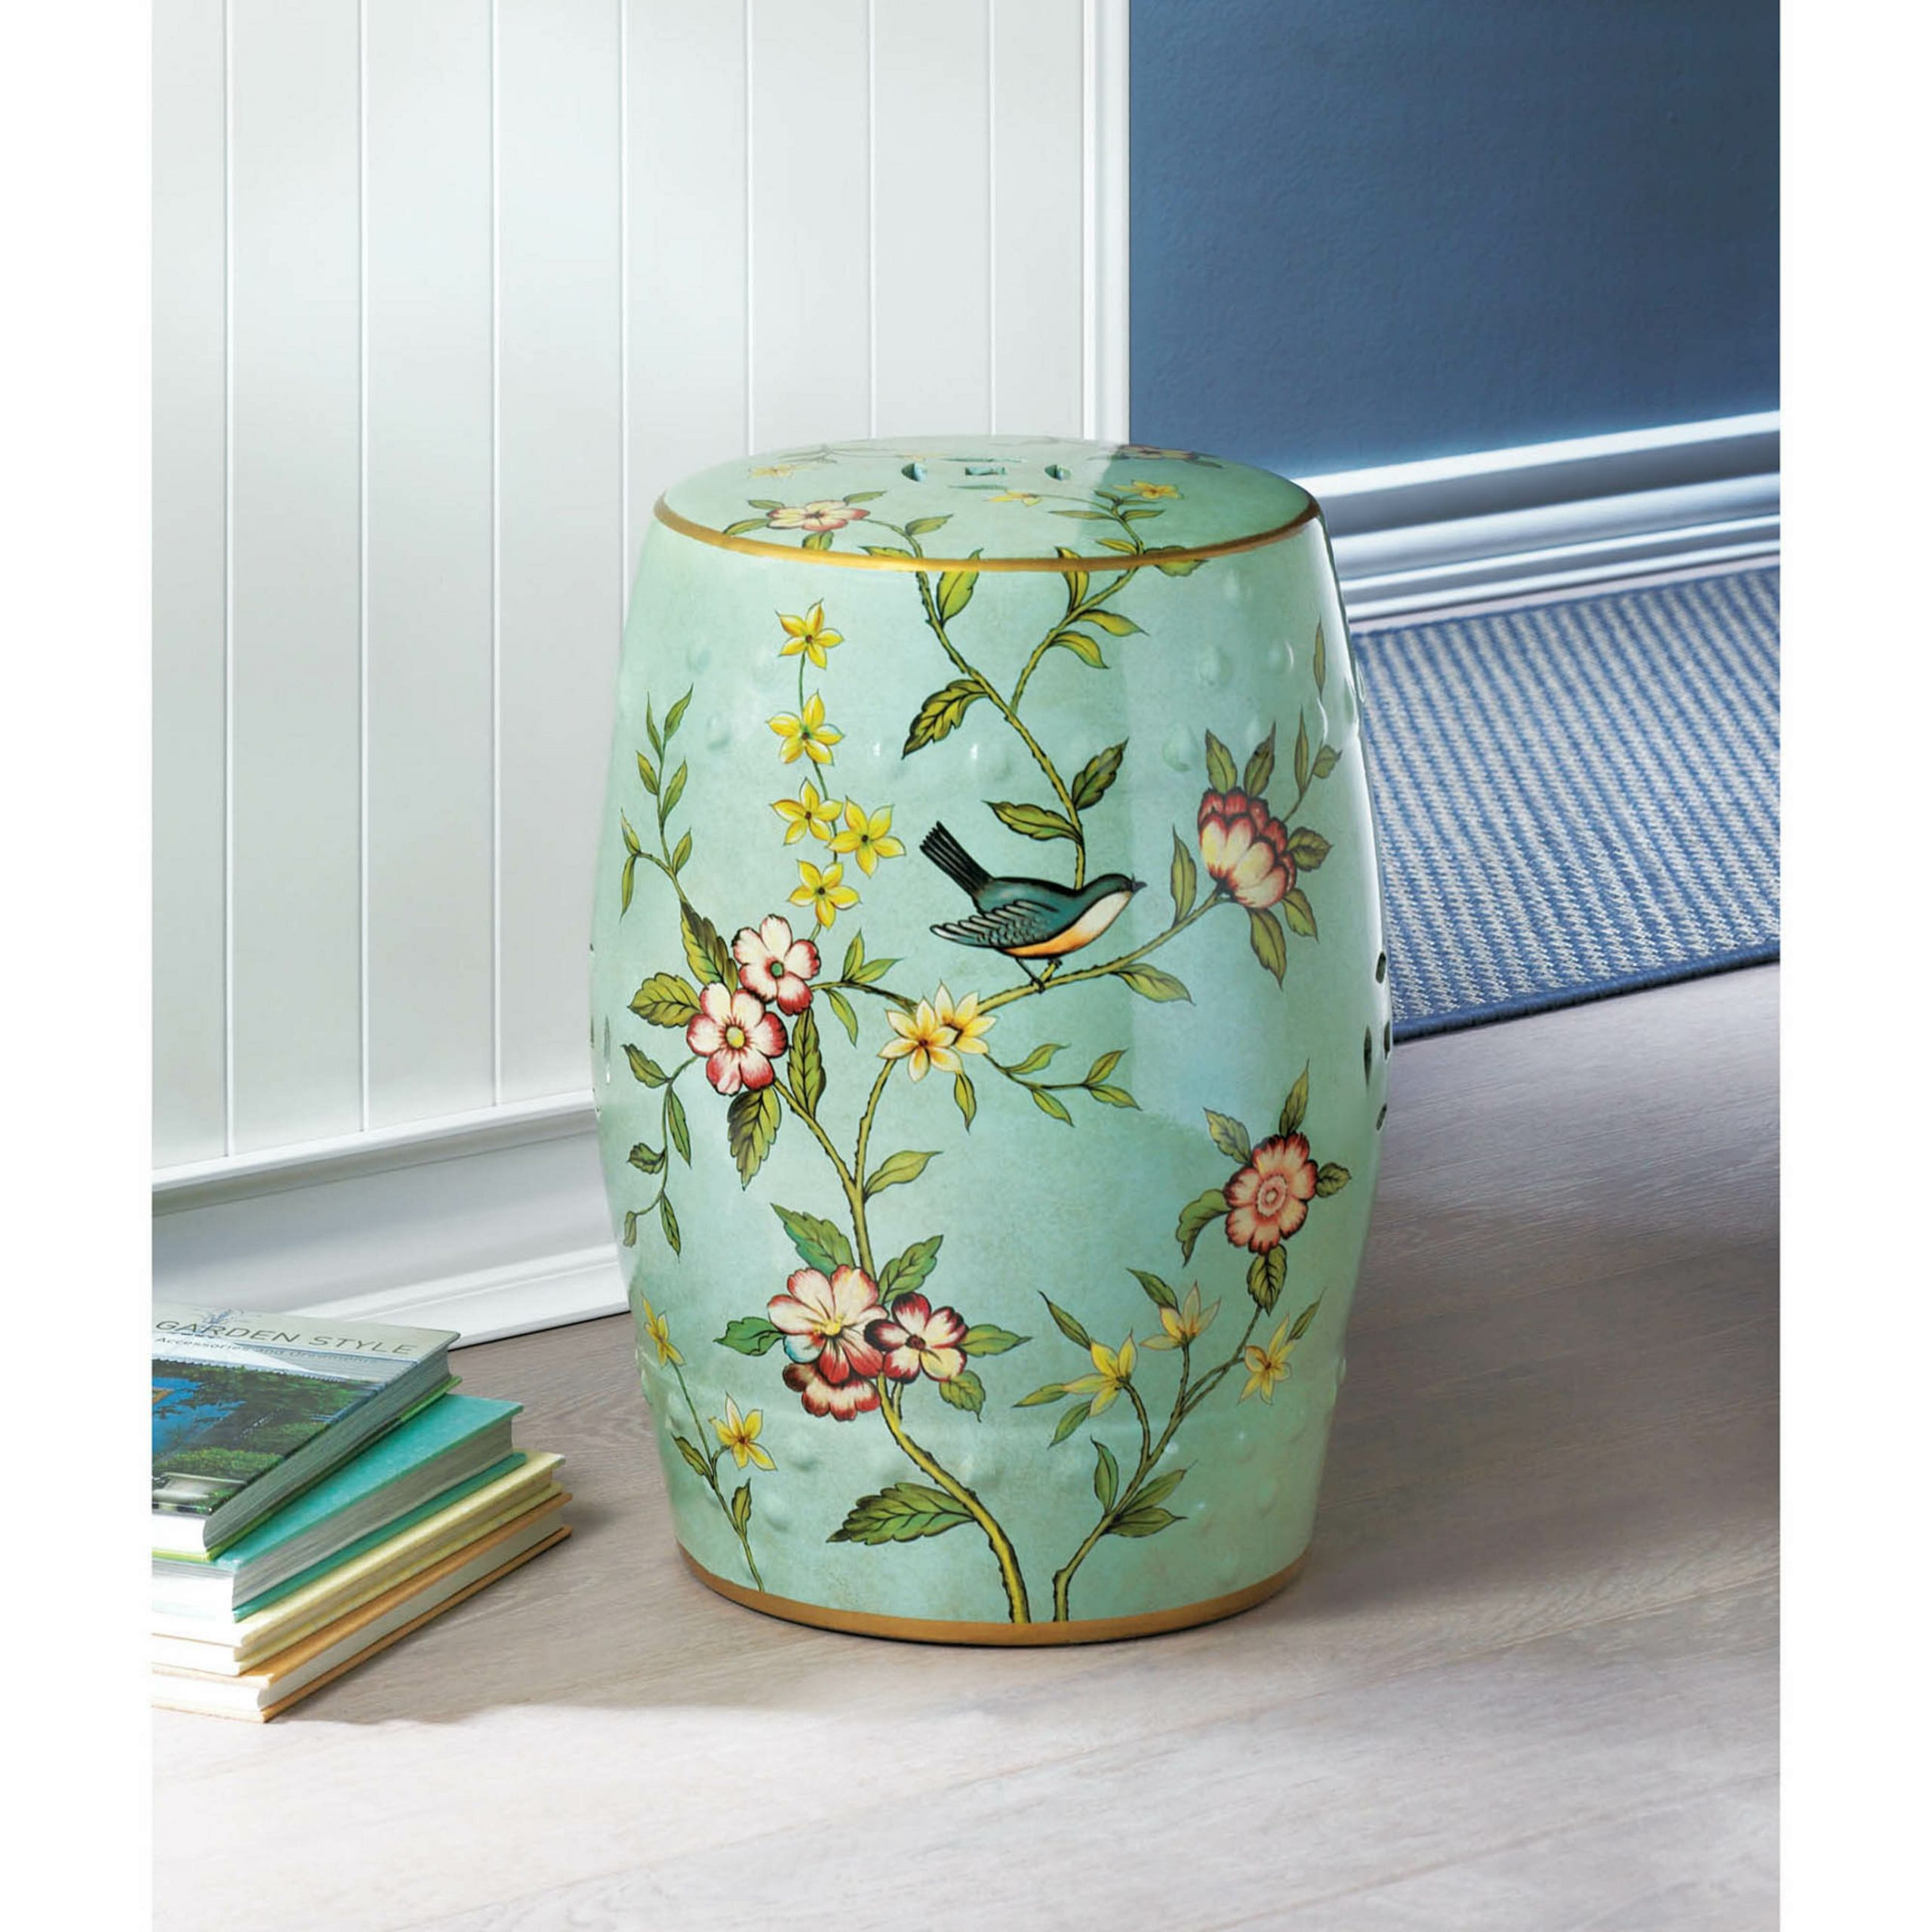 Janke Floral Garden Stool Intended For Wilde Poppies Ceramic Garden Stools (View 19 of 25)